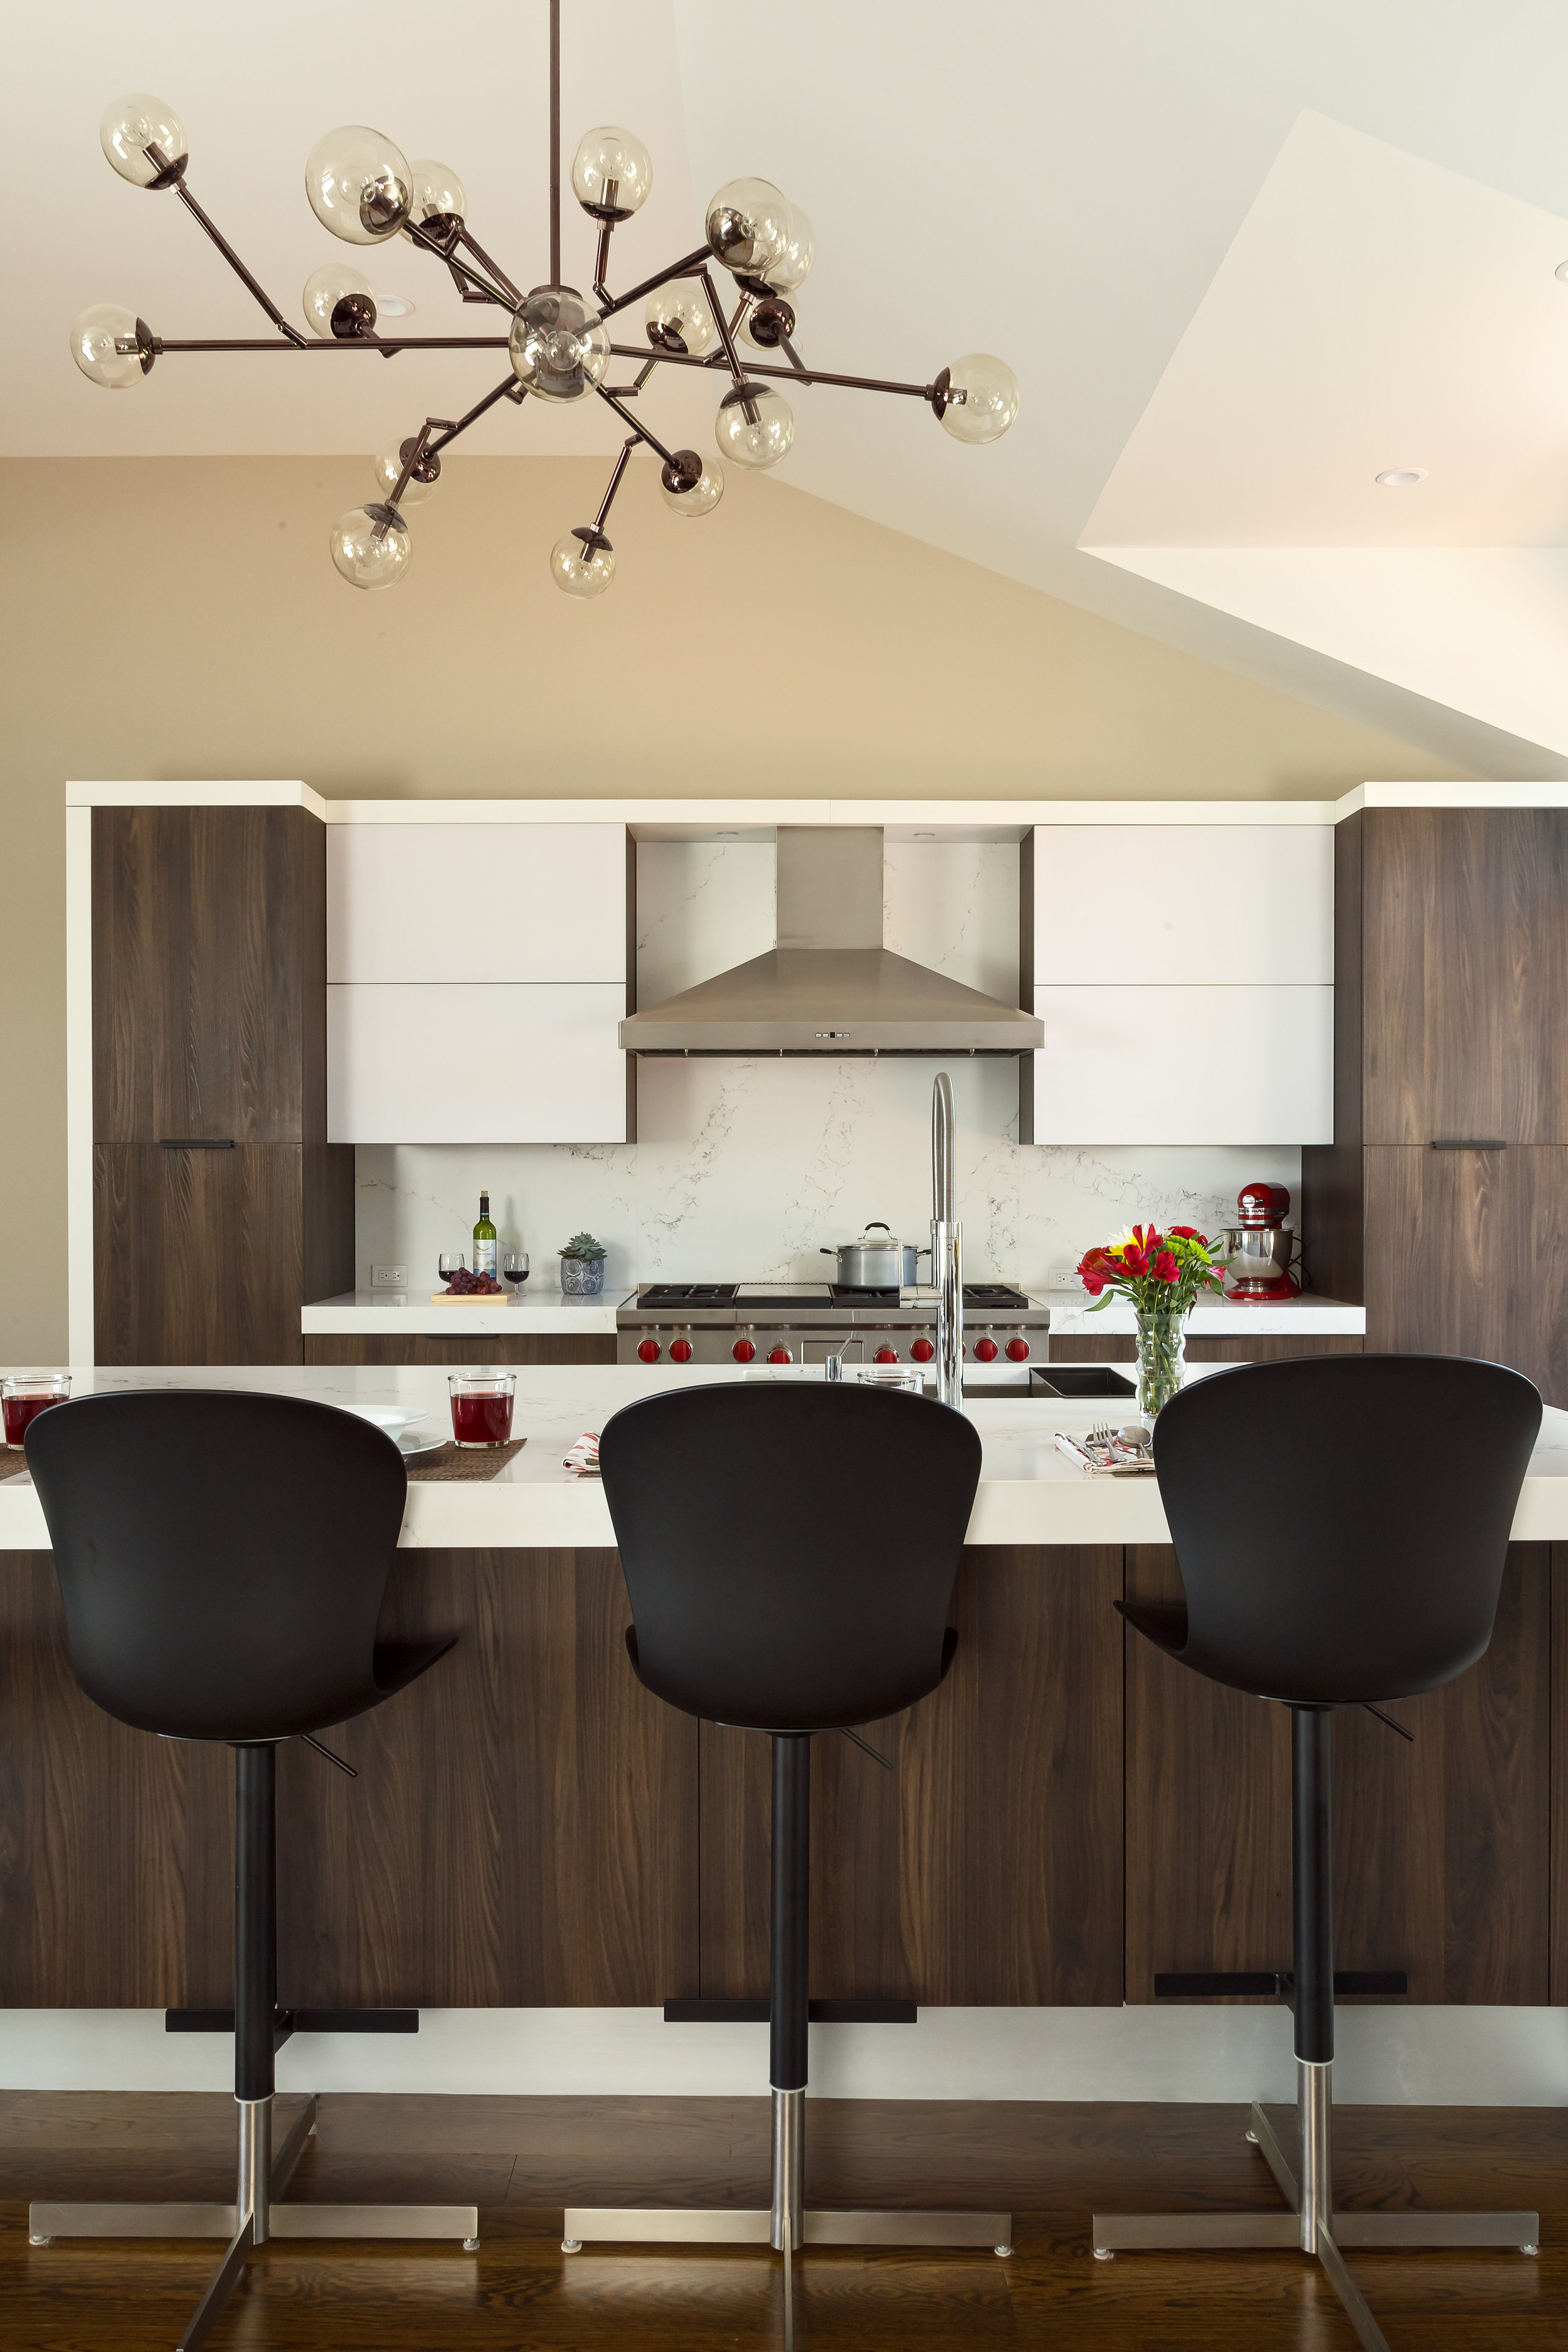 Contemporary style kitchen with counter tools